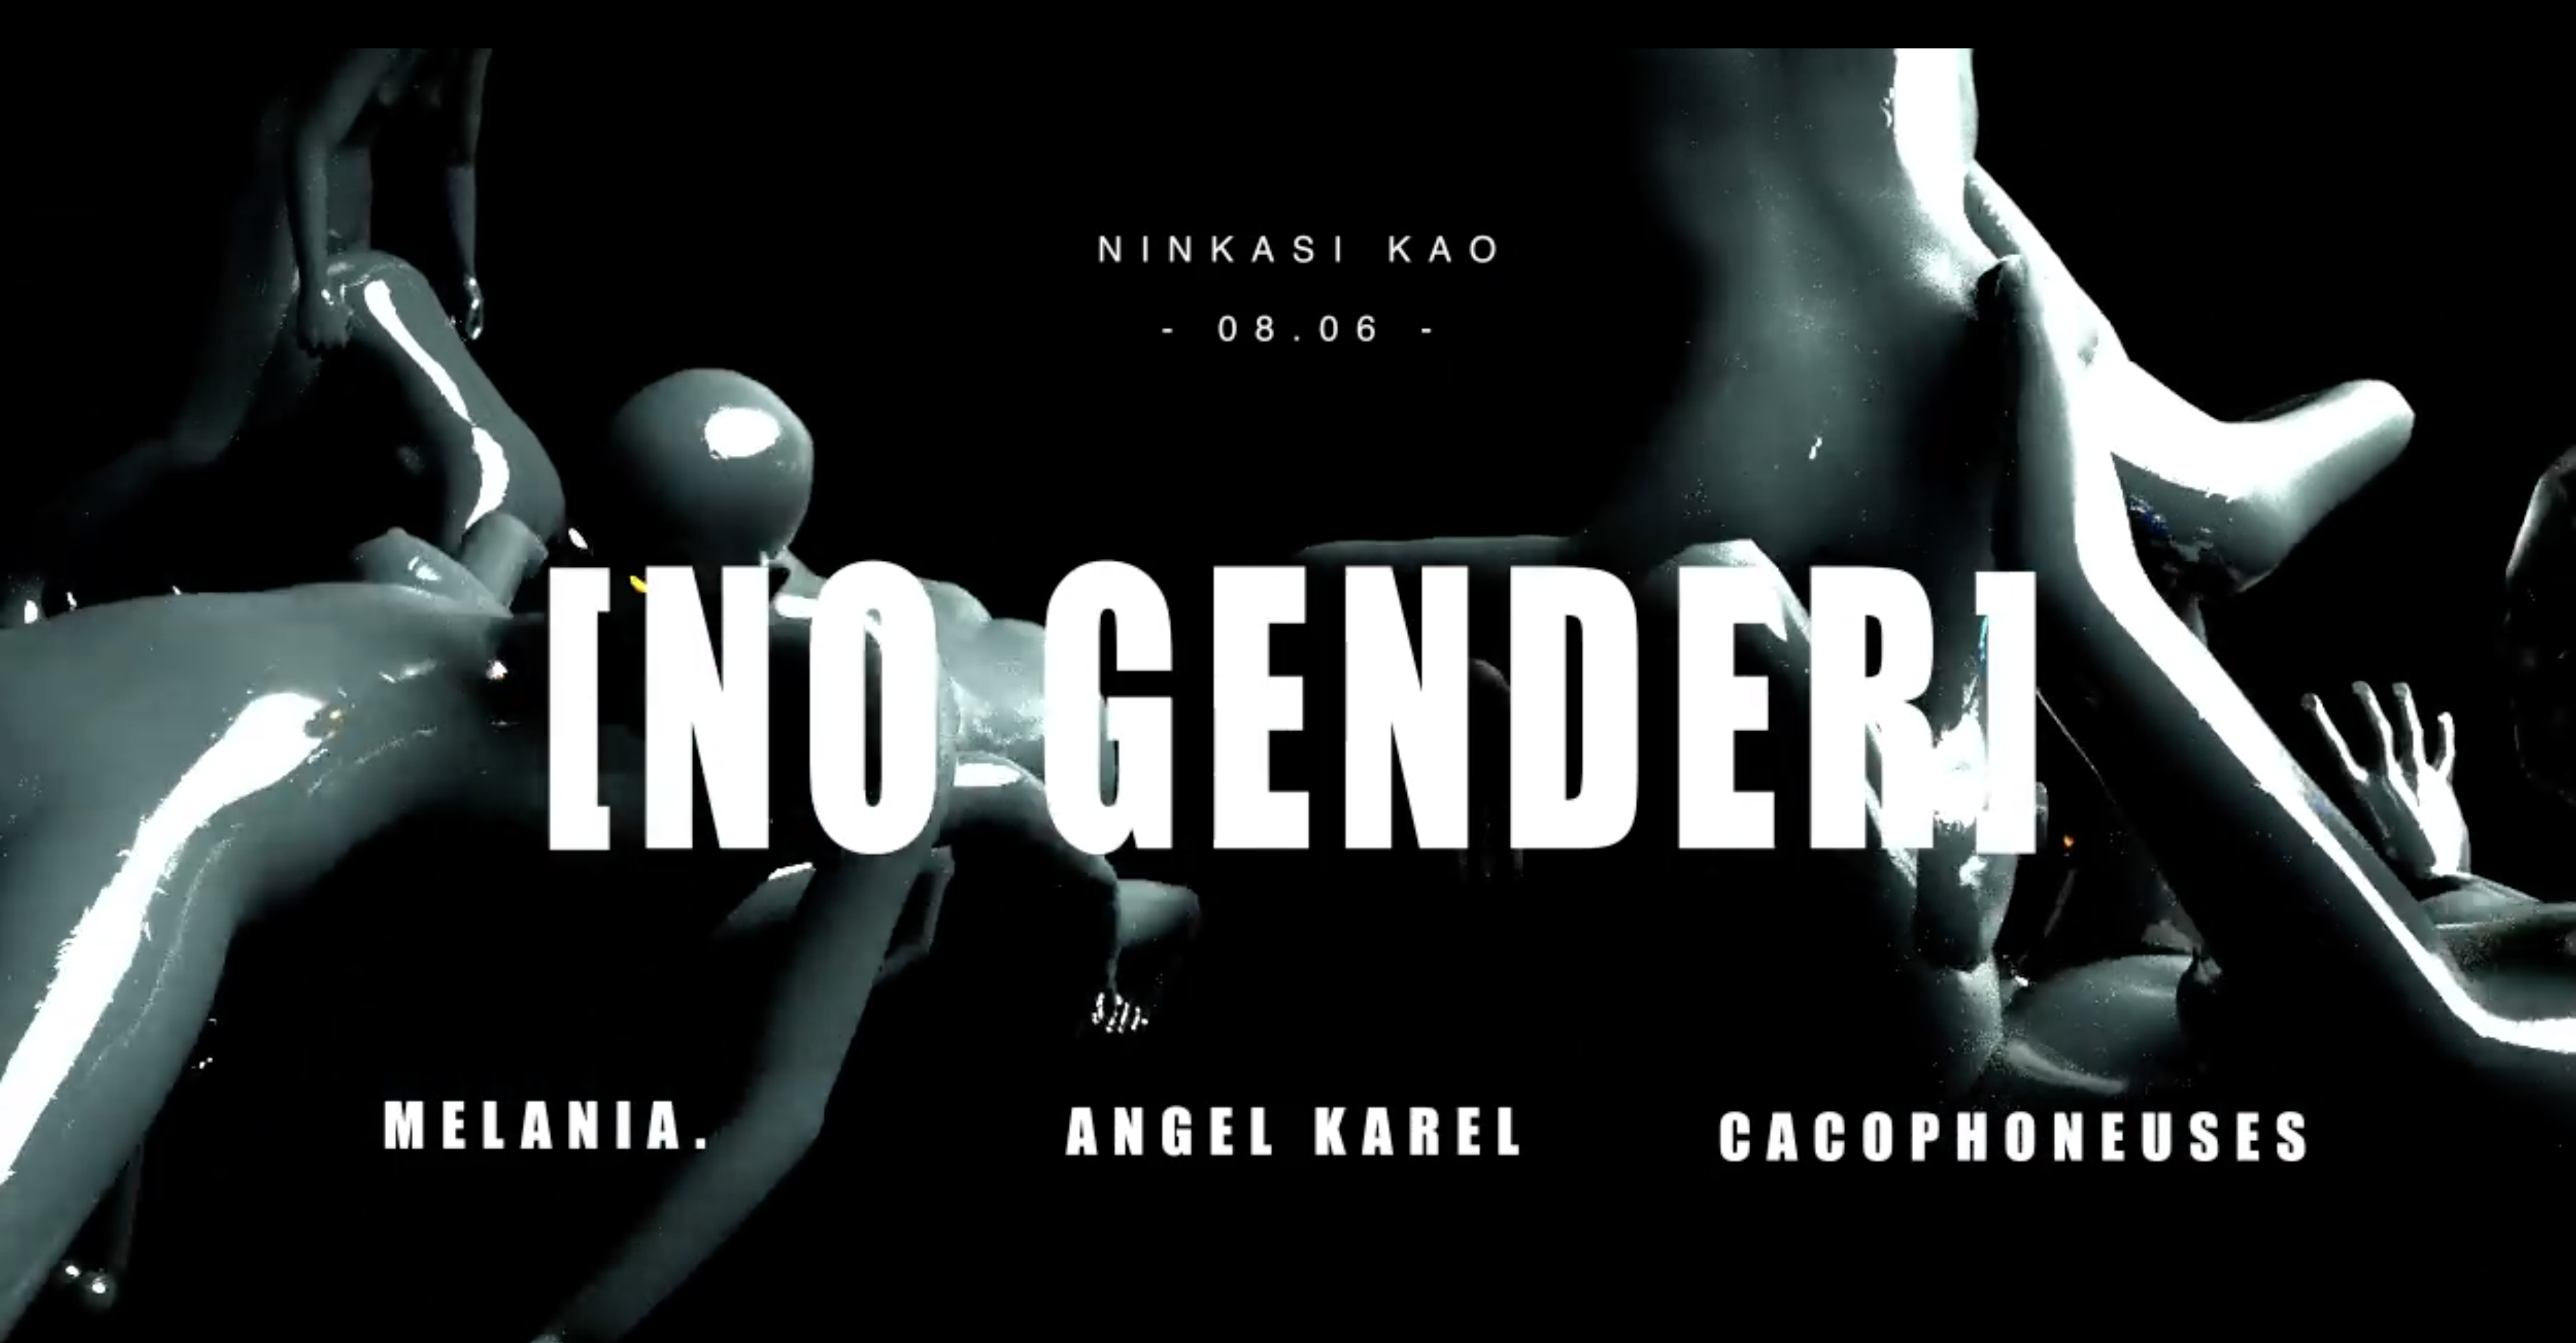 no gender angel karel cacophoneuses melania